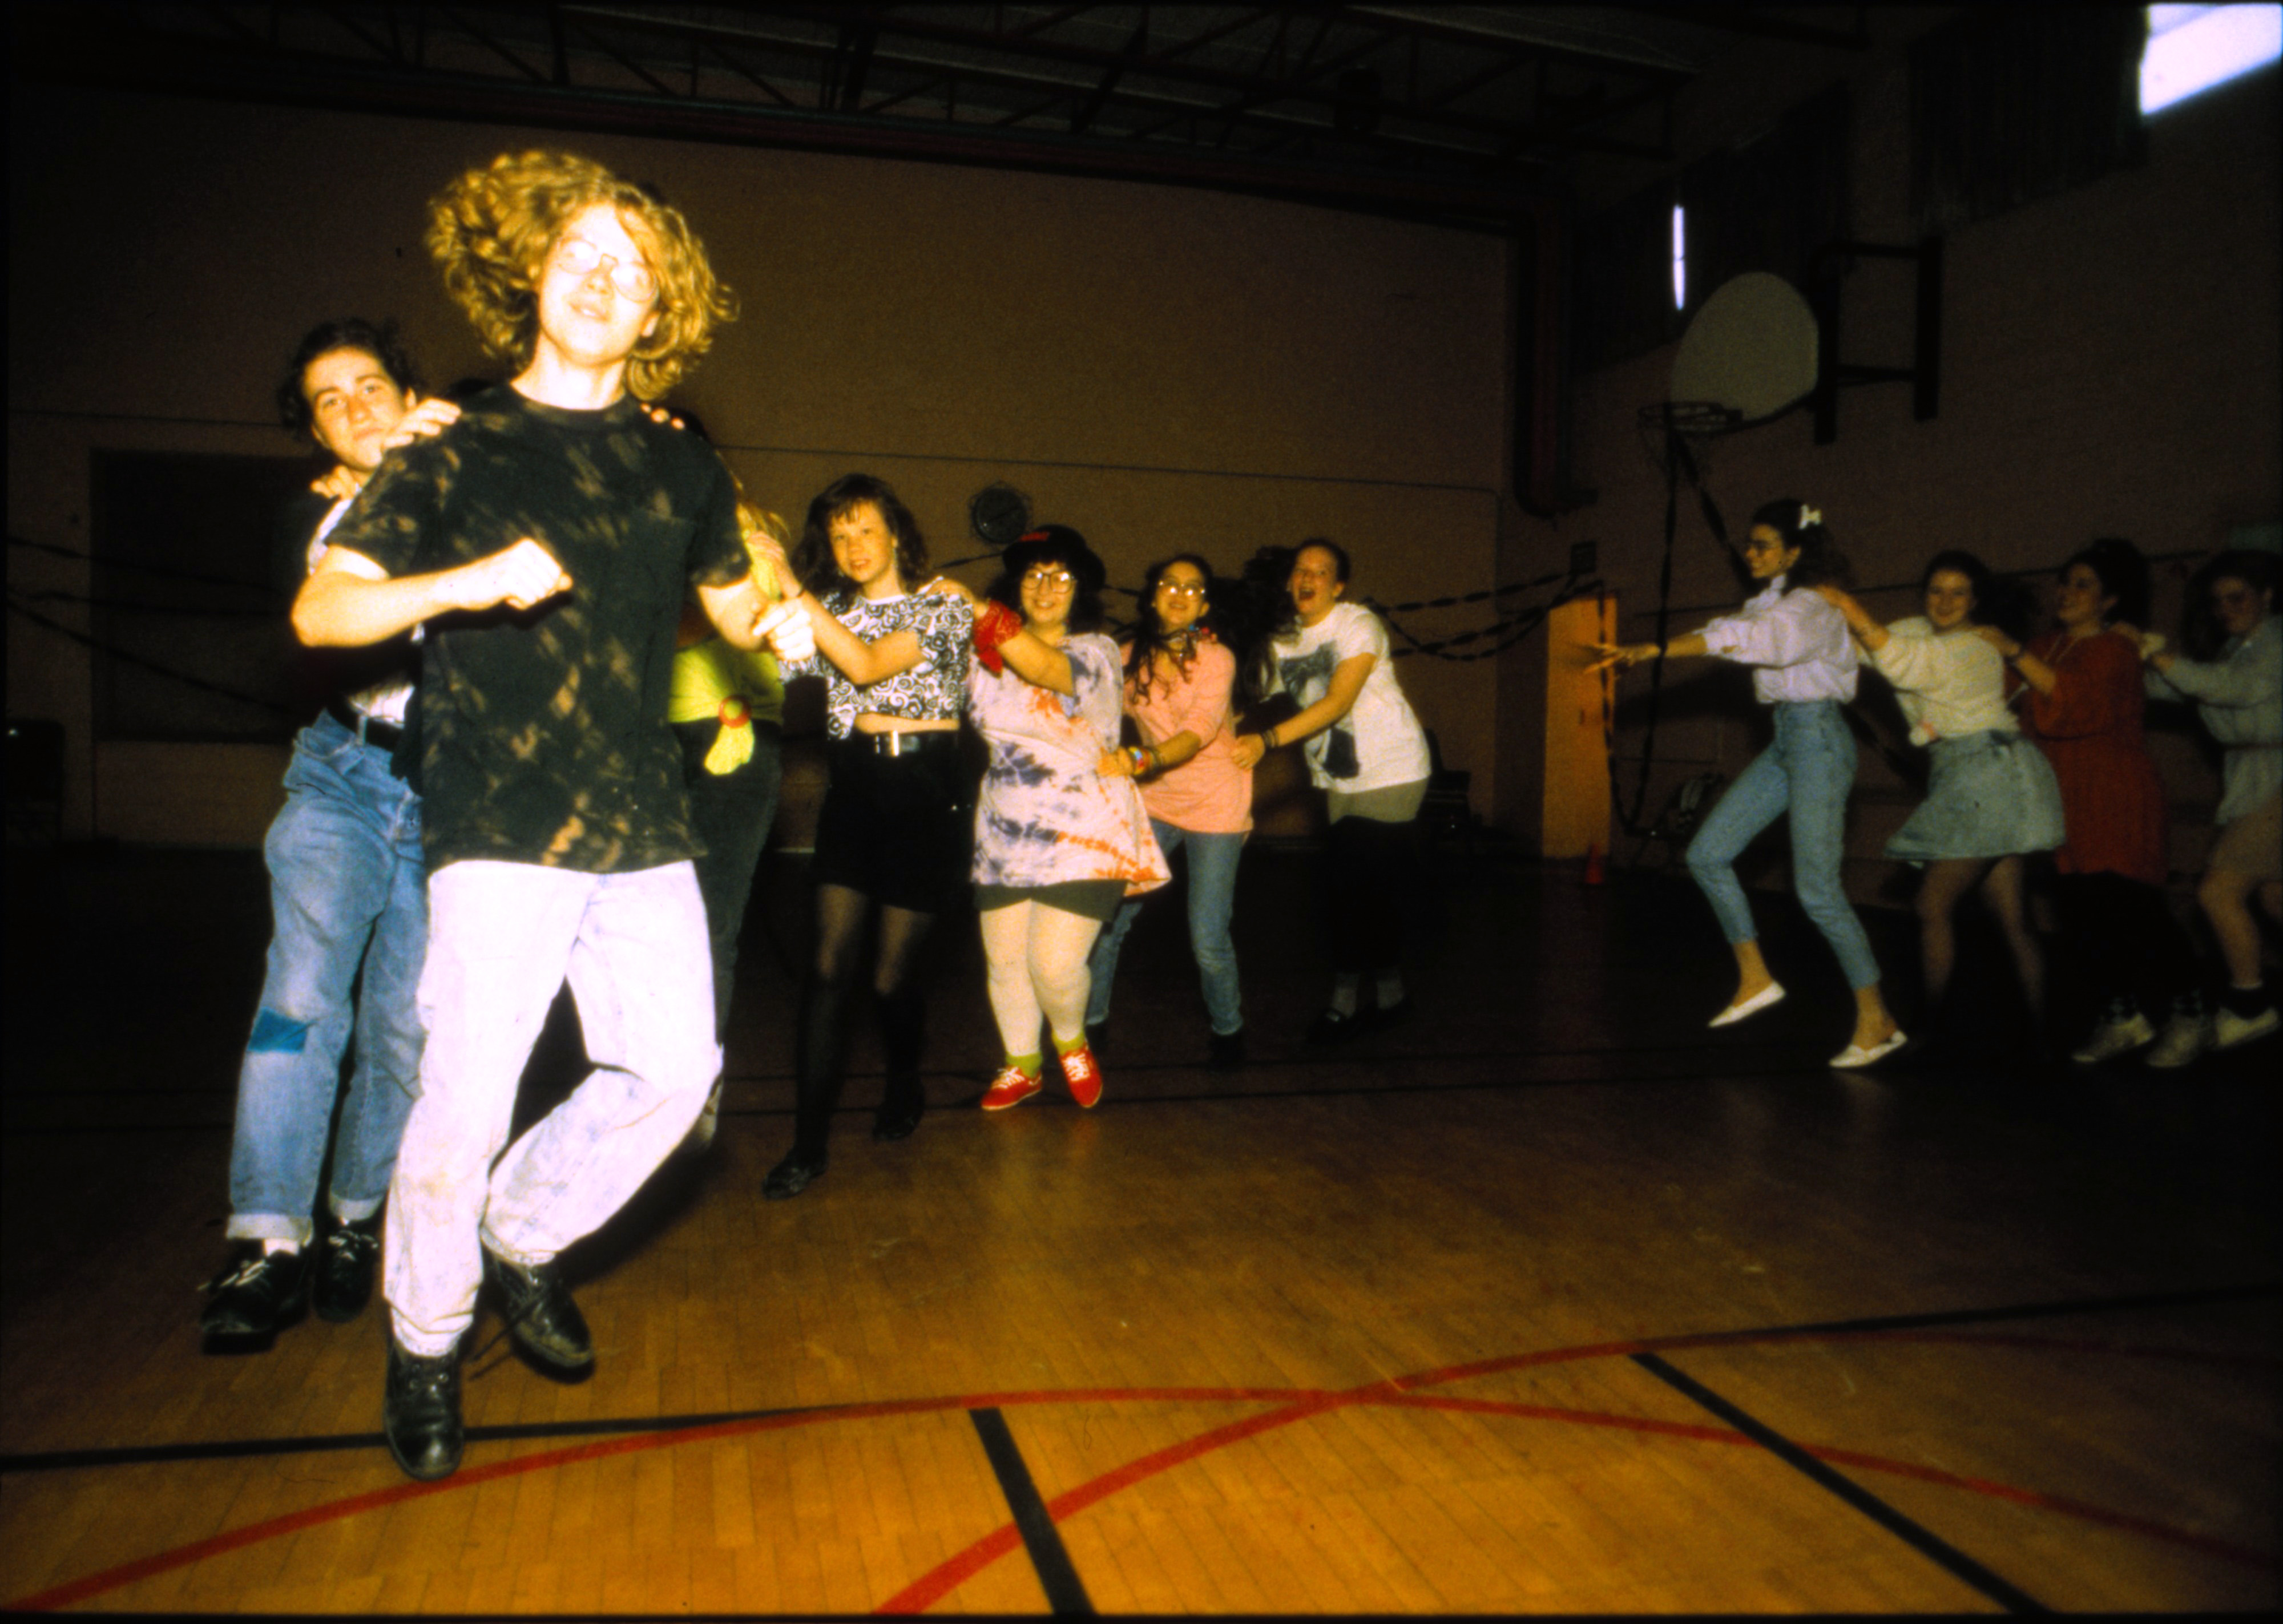 1980s dance at Community High School, April 1992 image